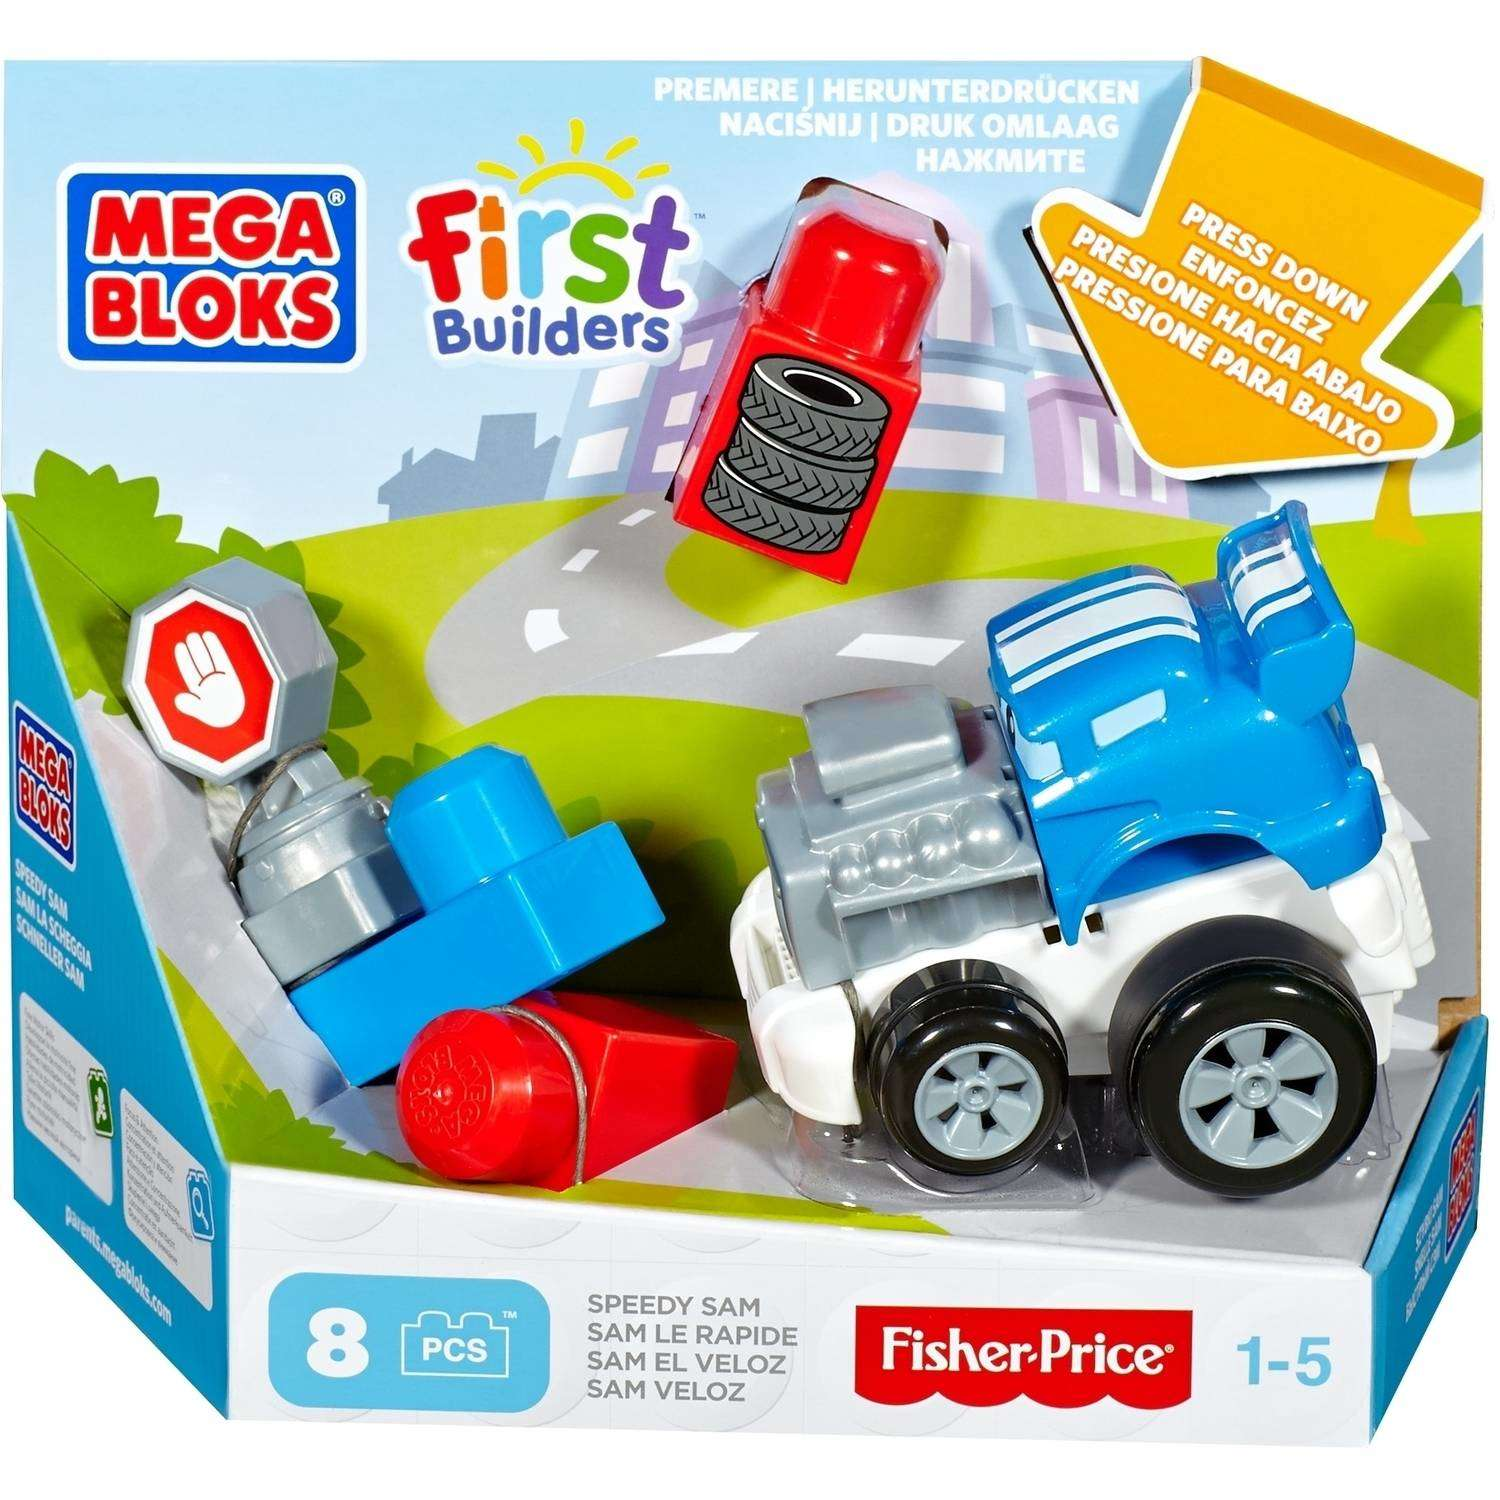 Mega Bloks First Builders Speedy Sam by Mattel